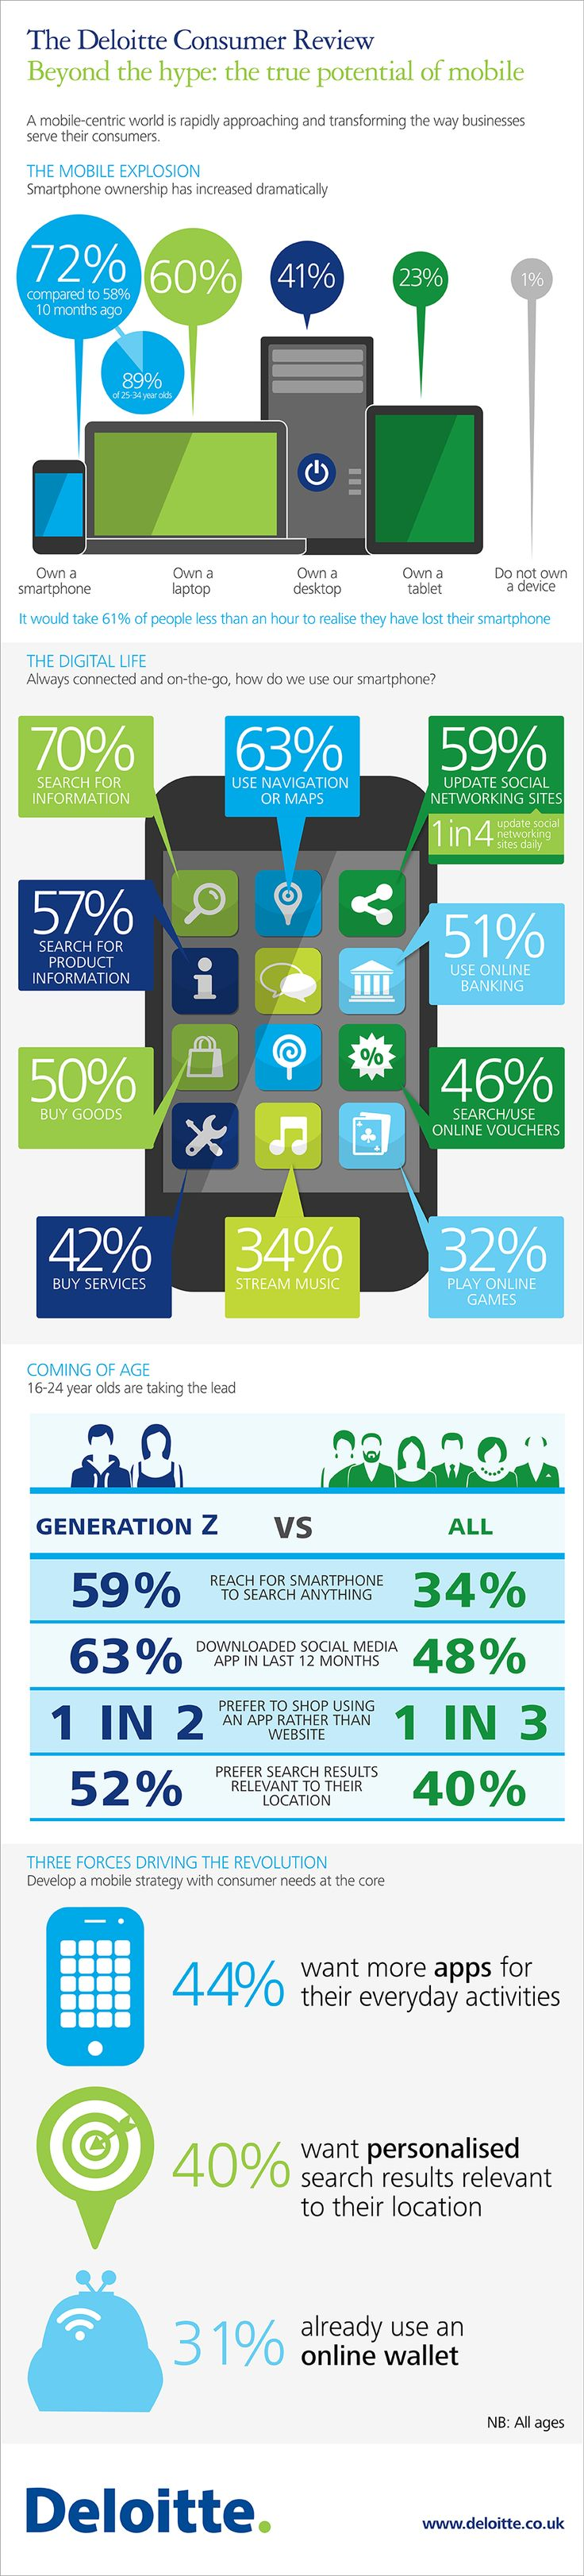 """Infographic – """"Beyond the hype: the true potential of mobile."""" From Deloitte Consumer Review"""